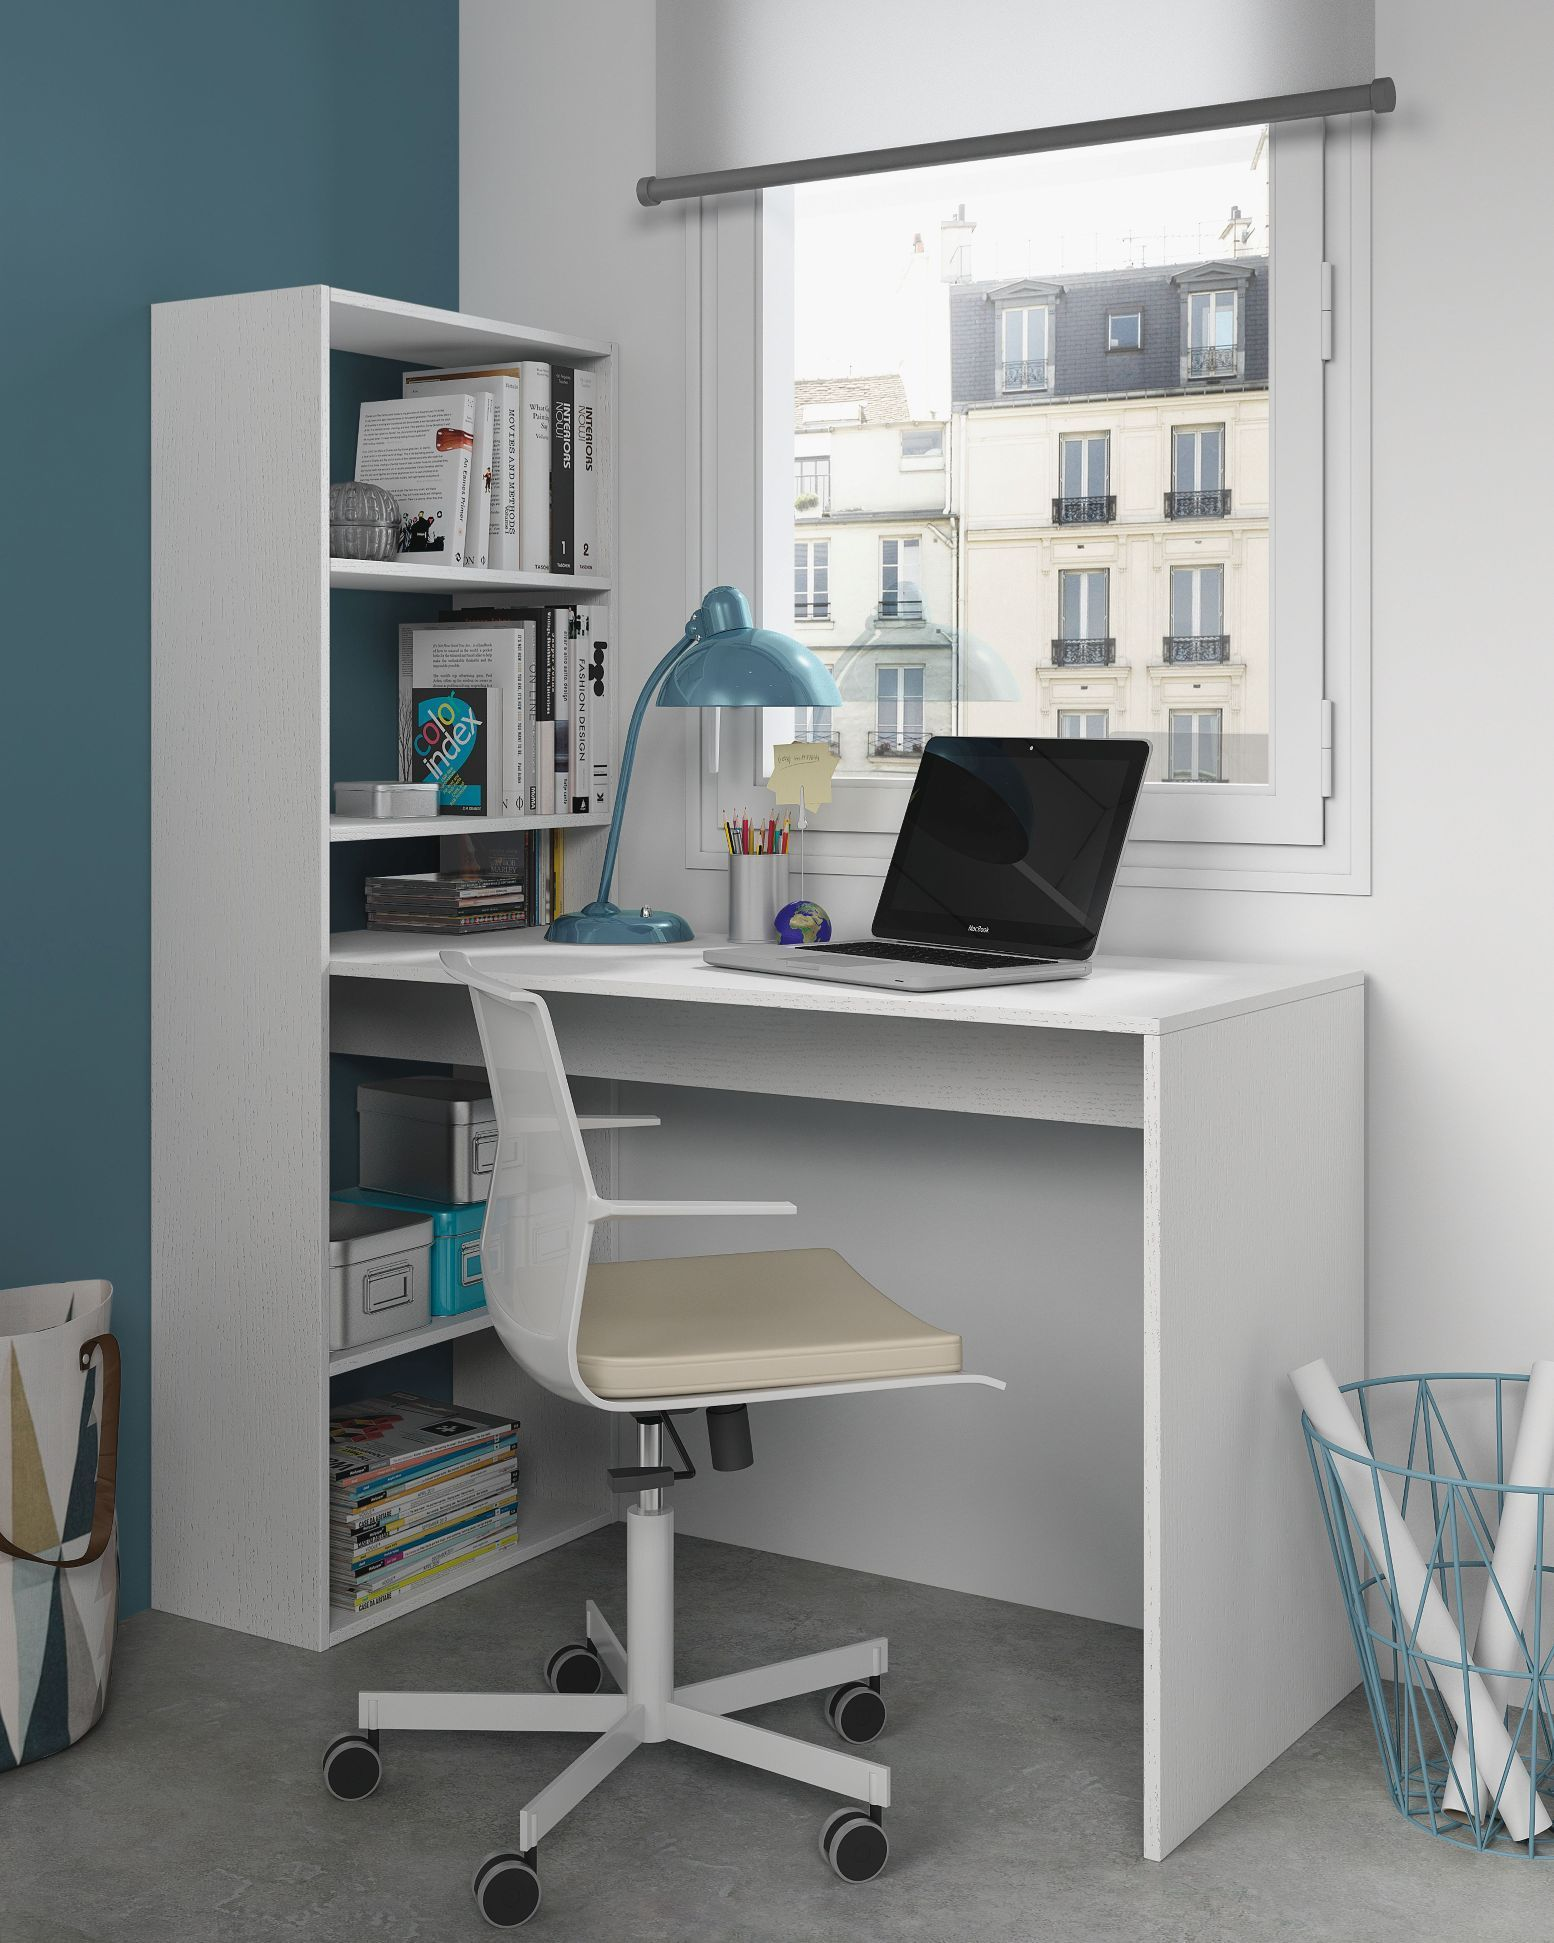 Duplex Floating Desk With Bookshelf In White By Furniturefactor Co Uk Bookshelf Desk Furniture Home Office Furniture